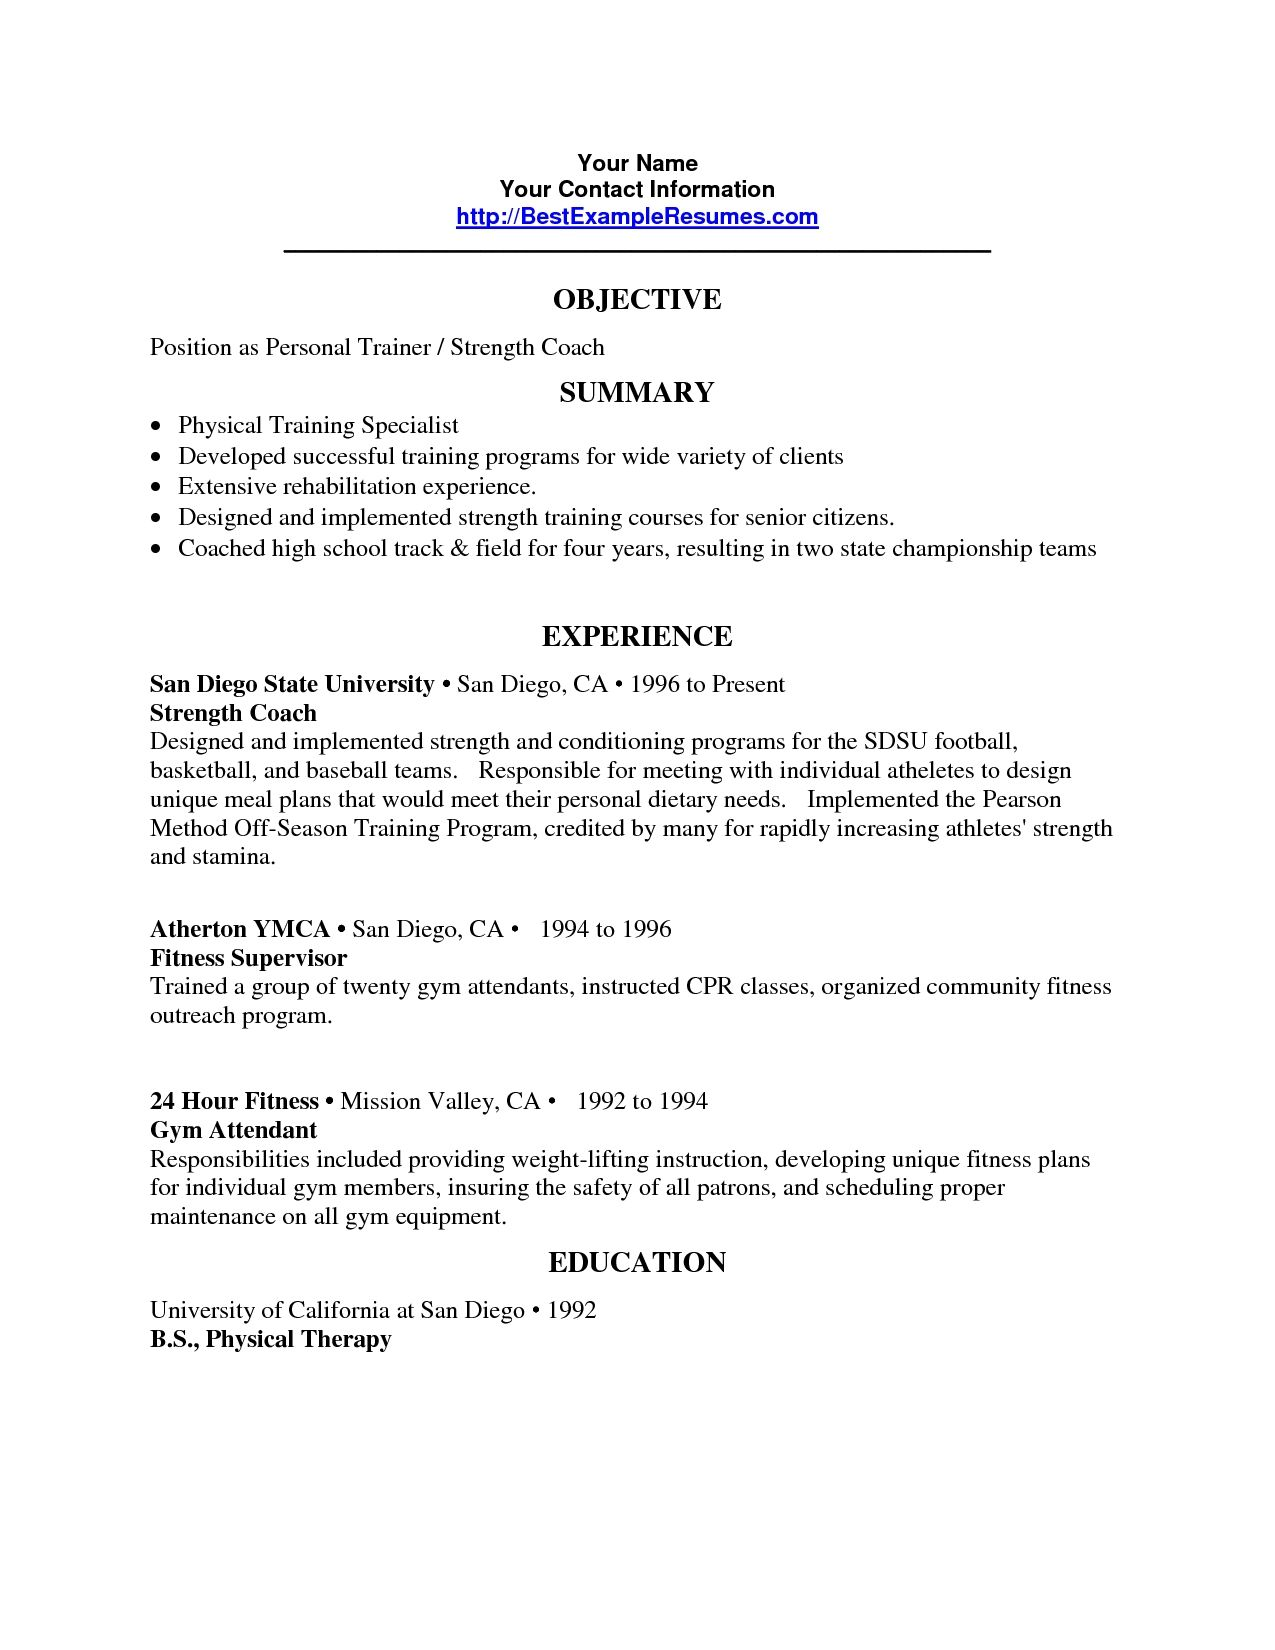 Summary Statement Resume Examples Personal Trainer Resume Objective Trainer Resume Sample Gallery